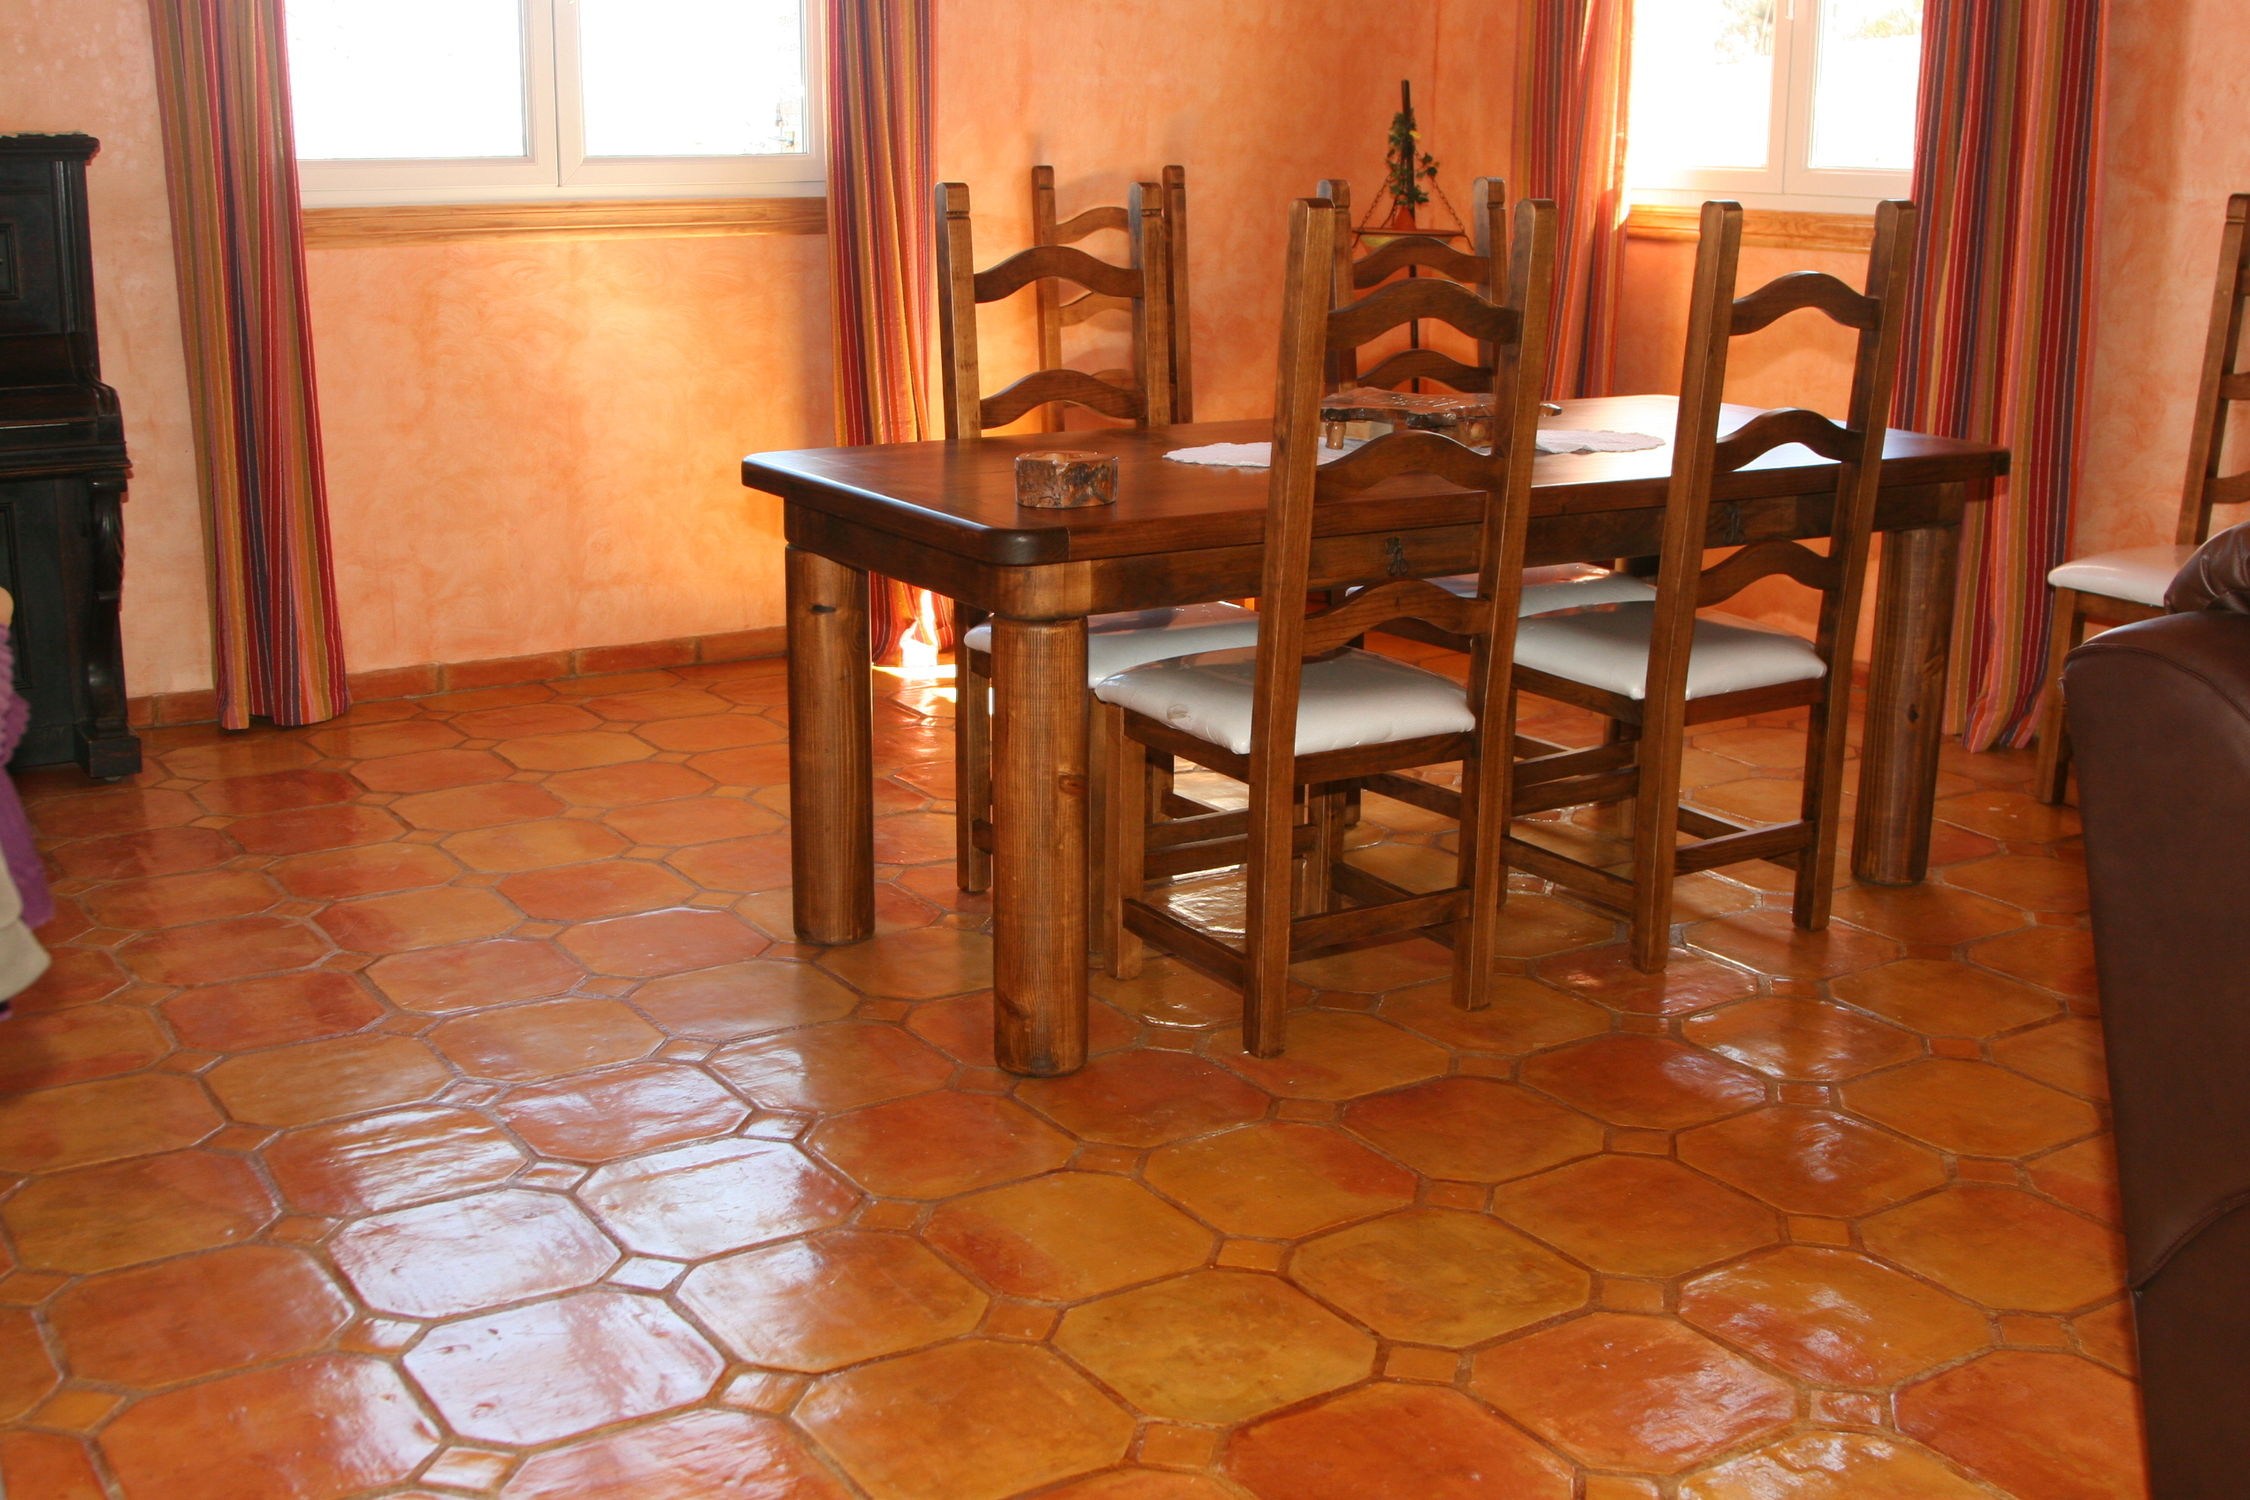 Indoor tile floor terracotta matte octogonal ceramicas indoor tile floor terracotta matte octogonal ceramicas antonio aleman dailygadgetfo Choice Image